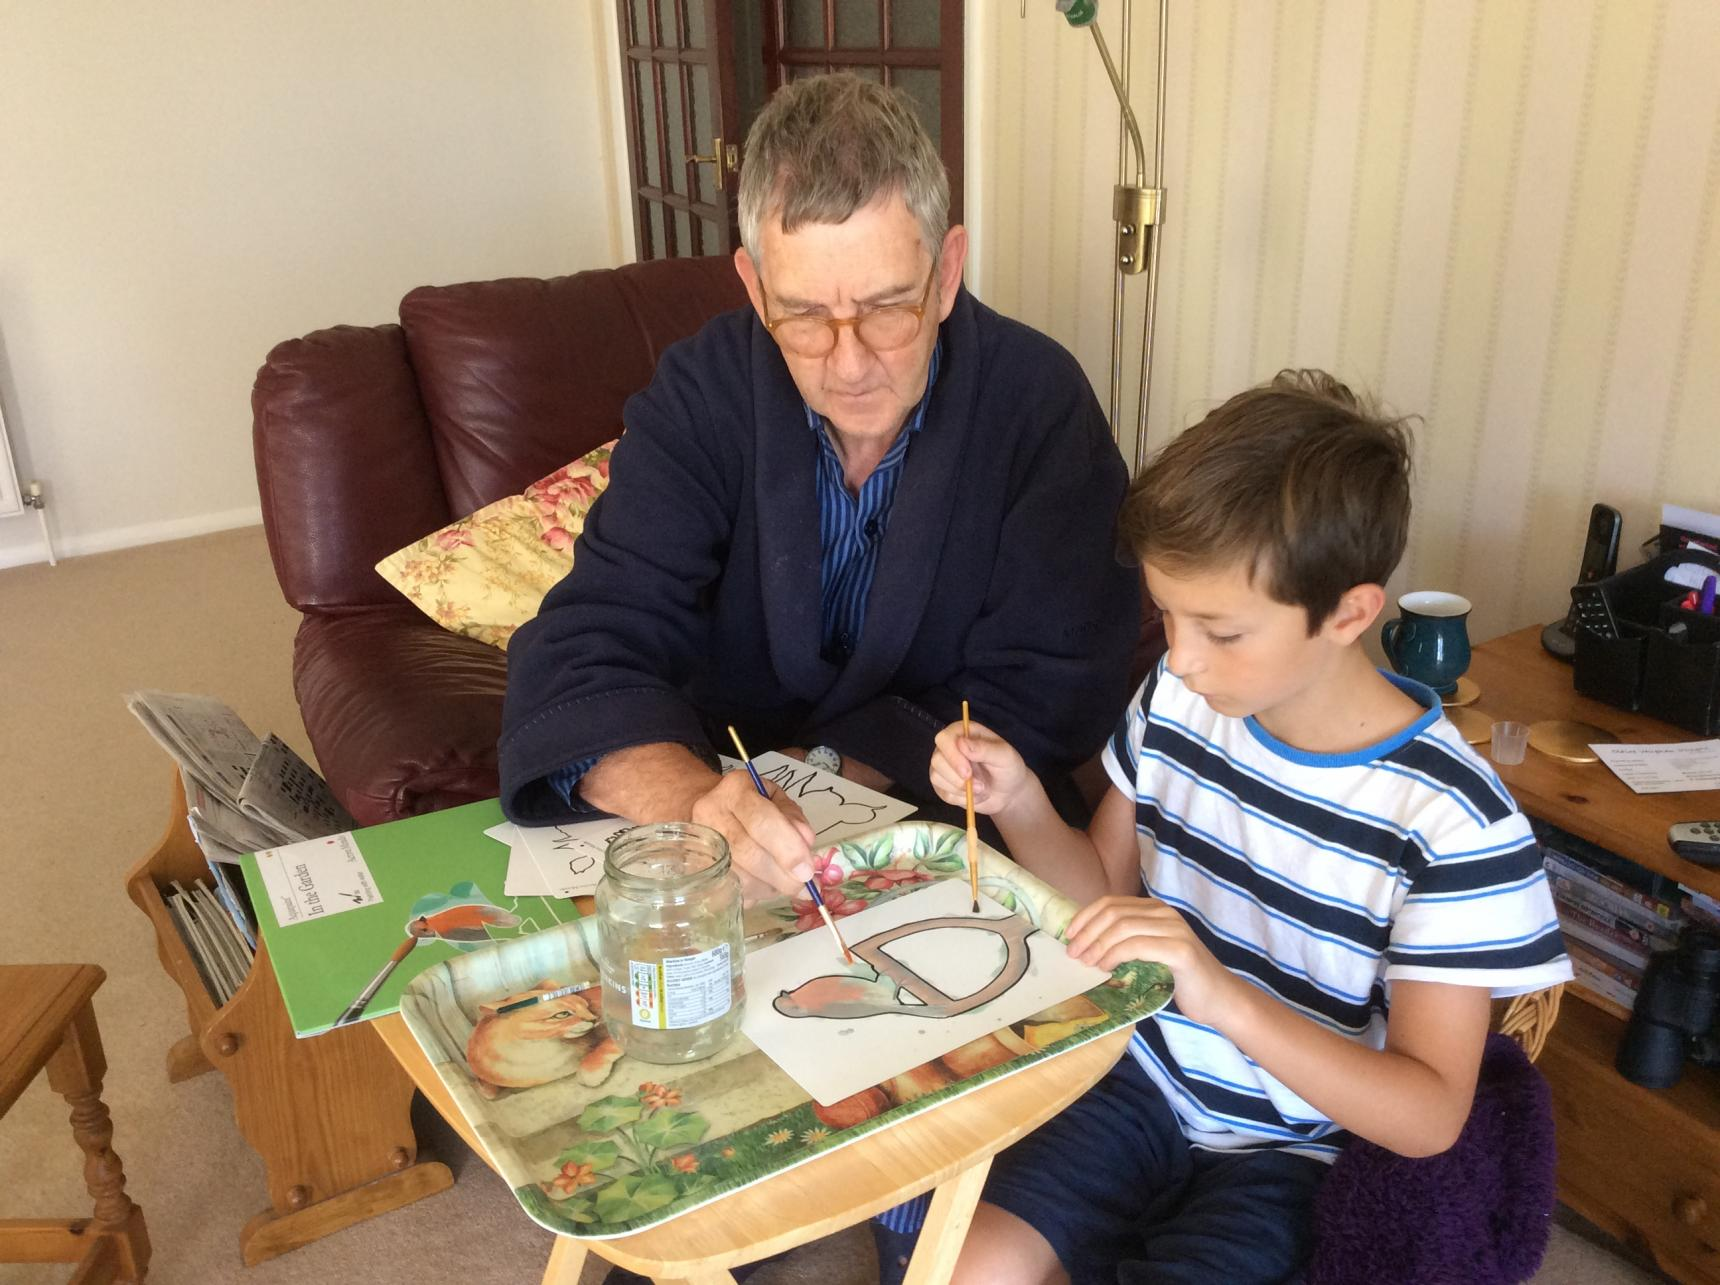 Keith painting with his grandson